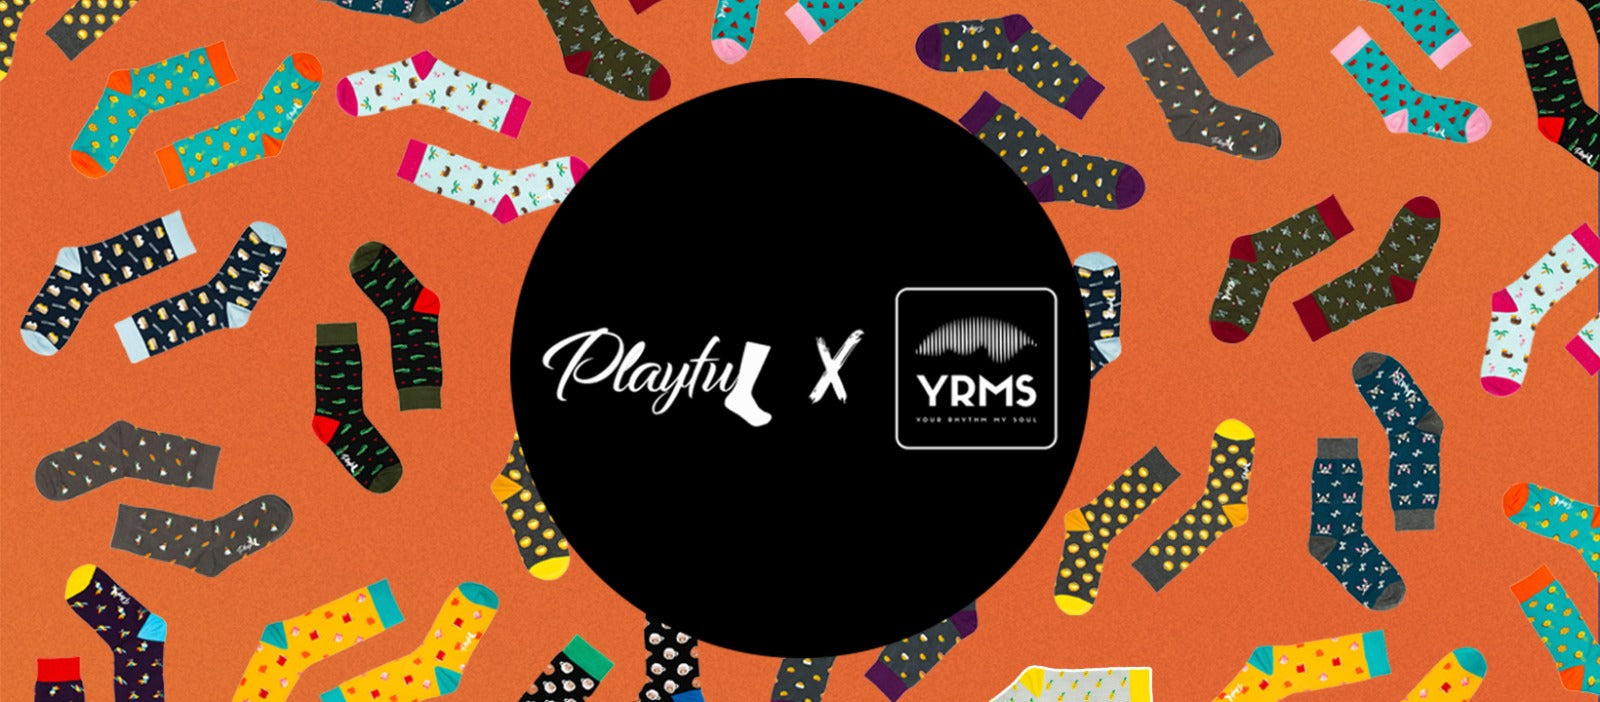 Your art 🎨 X Playful Socks 🧦 X Jonathan Wong 🎼 = ❓❓❓